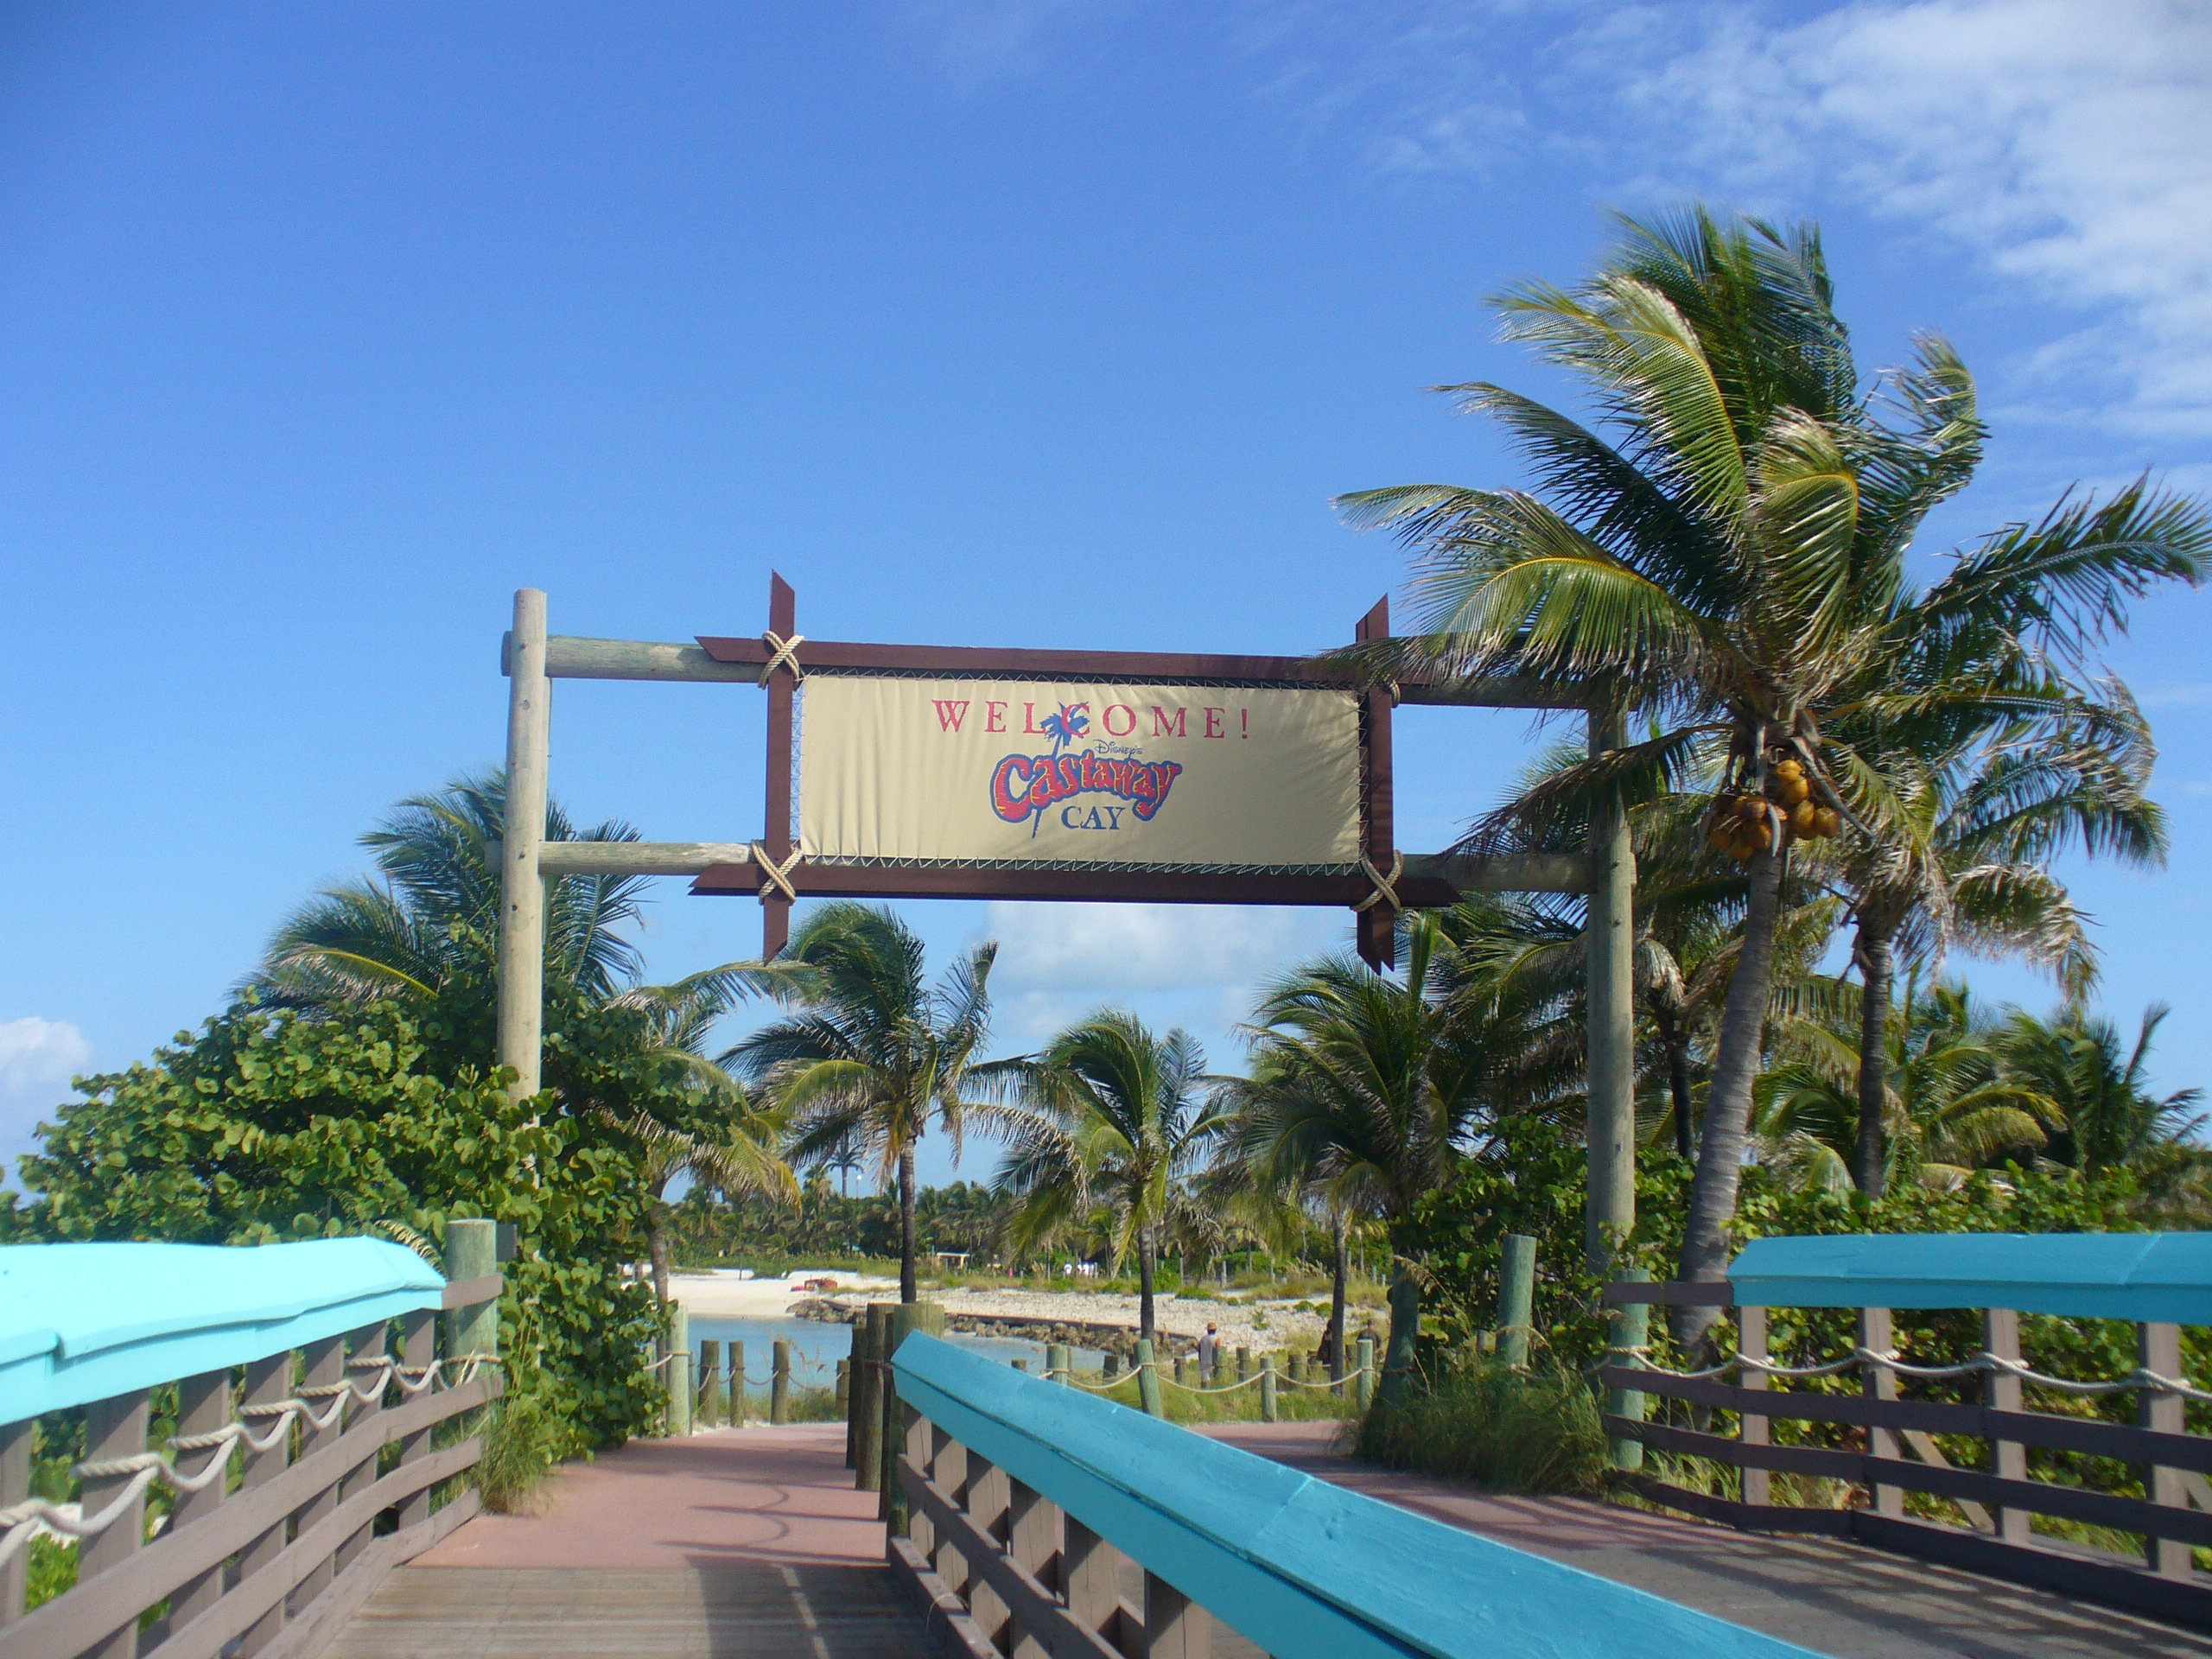 Castaway Cay Getaway Package Review